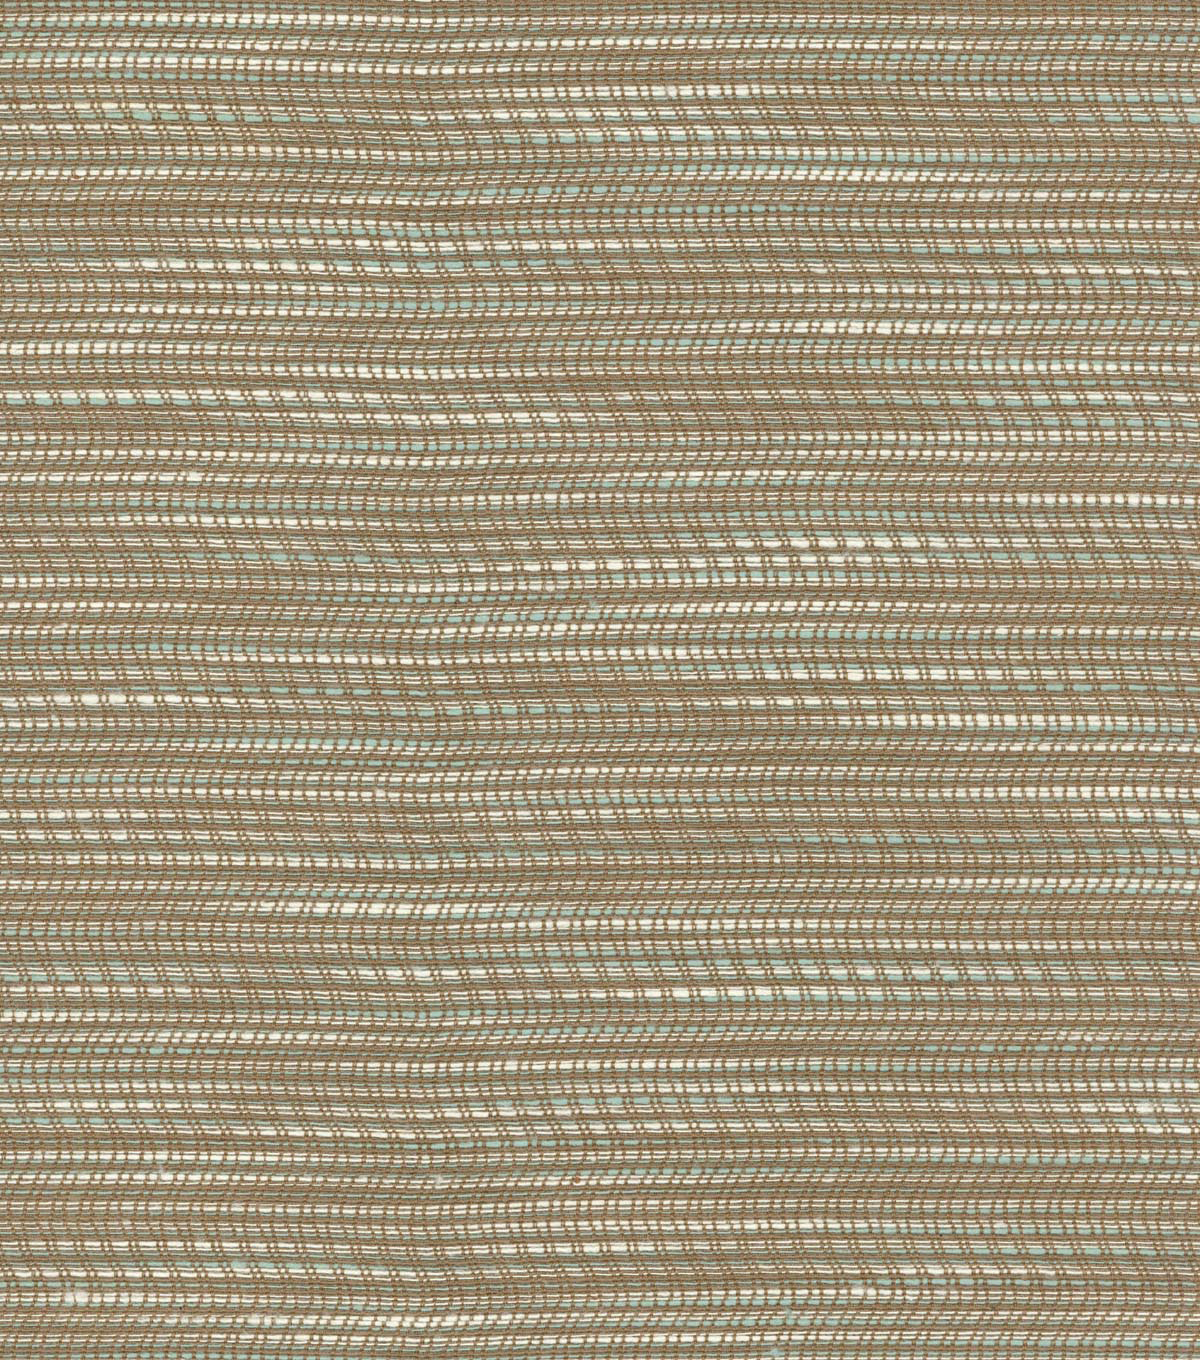 Home Decor 8\u0022x8\u0022 Swatch Fabric-PK Lifestyles Shimmy Evening